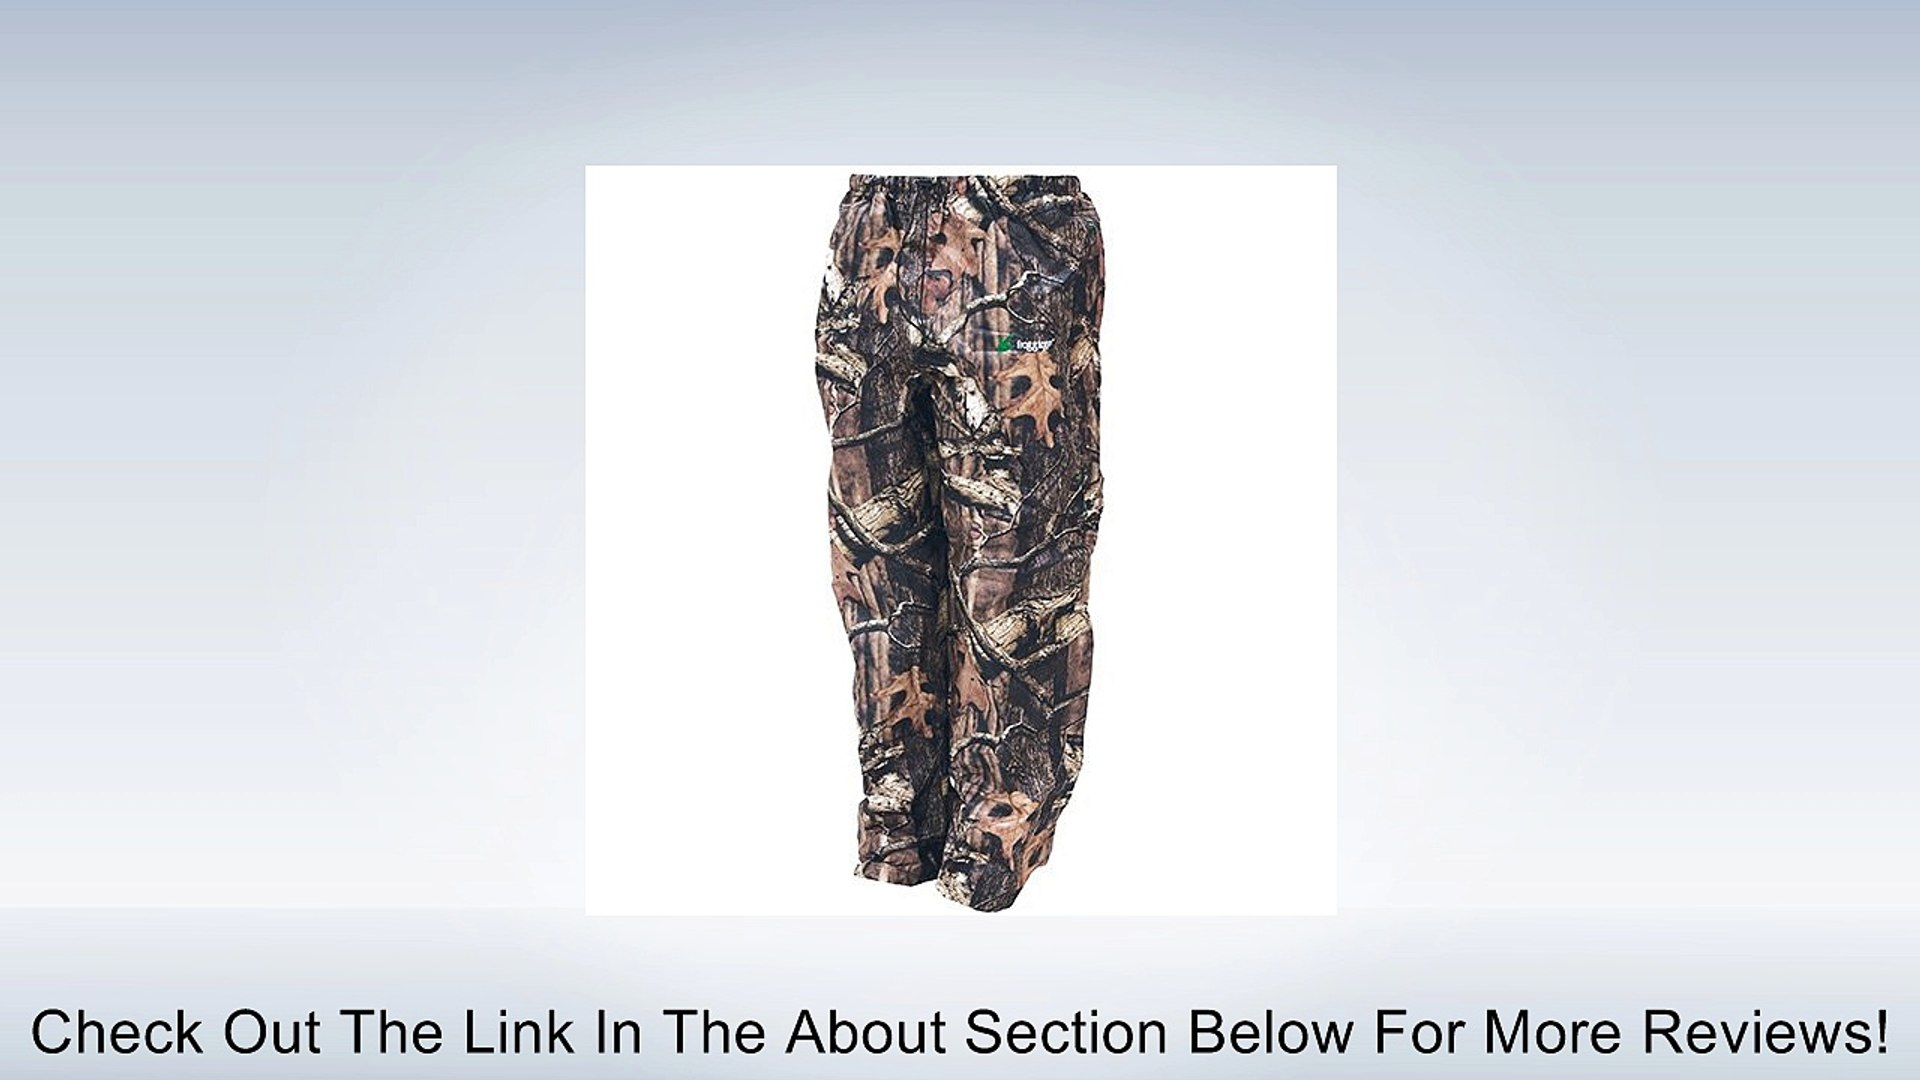 Frogg Toggs Pro Action Camo Rain Pants Mossy Oak Infinity XXXL 3XL Review